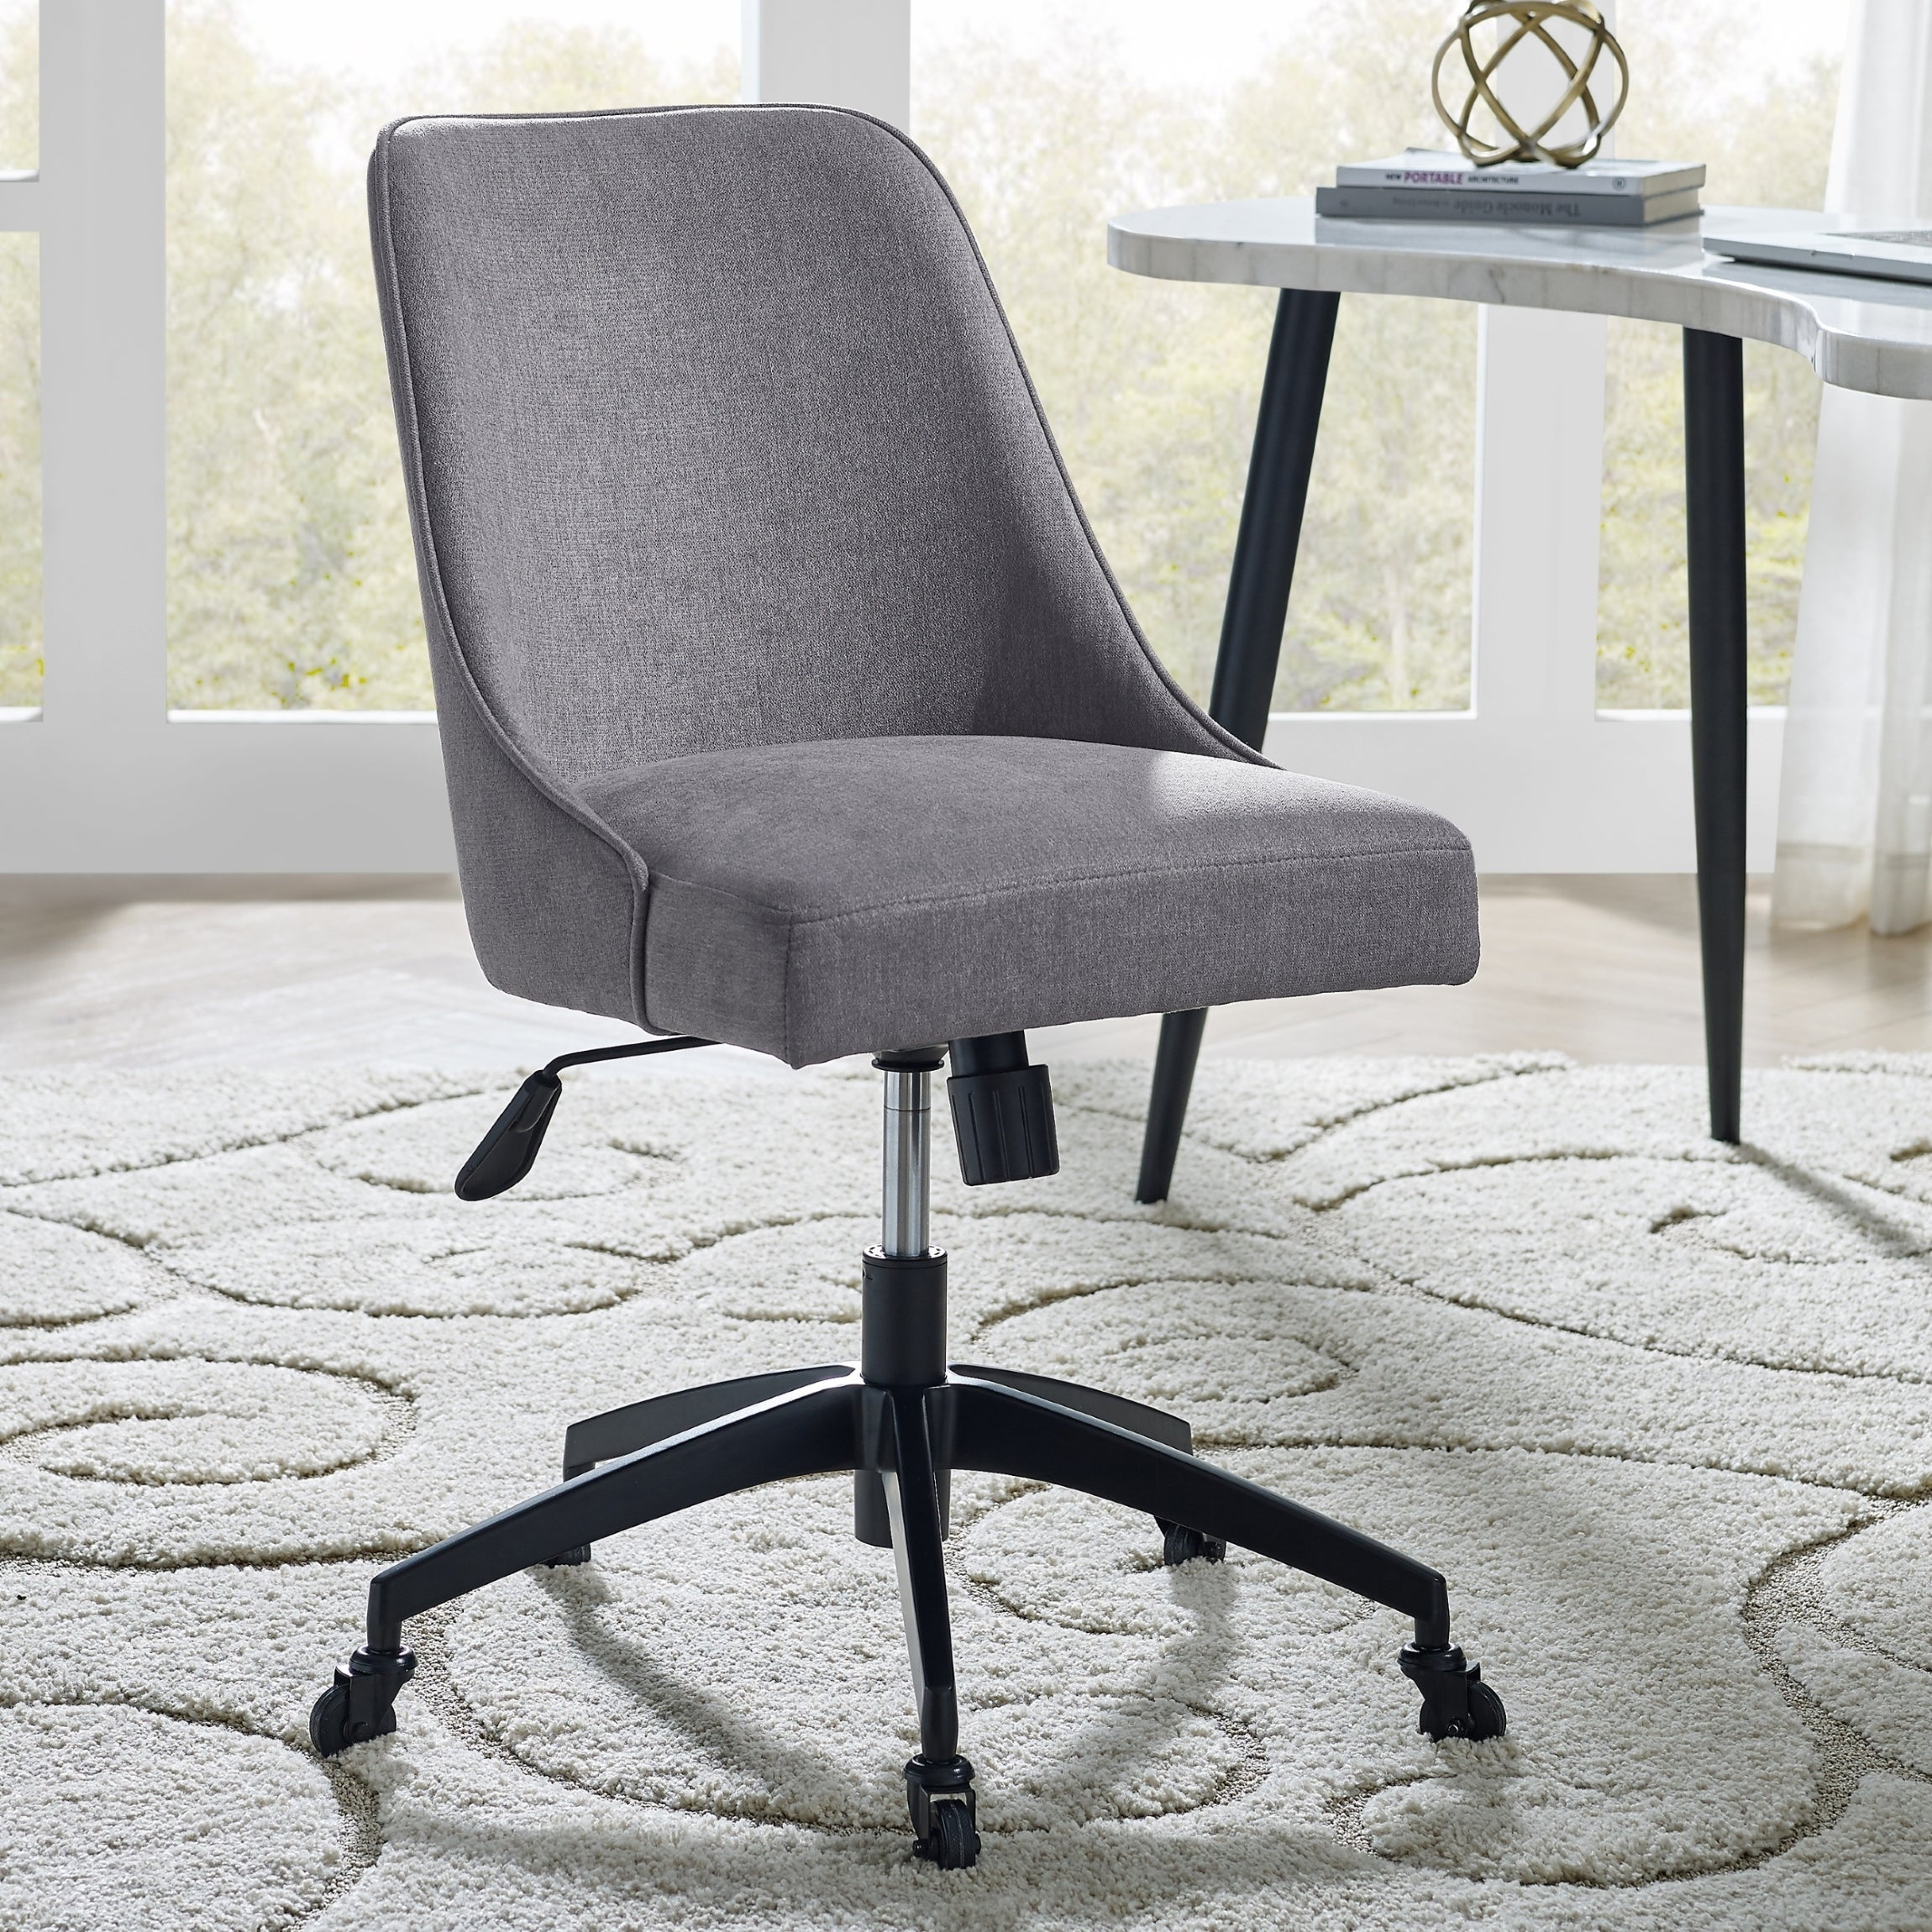 Shop Black Friday Deals On Knox Grey Upholstered Swivel Desk Chair By Greyson Living Overstock 30534285